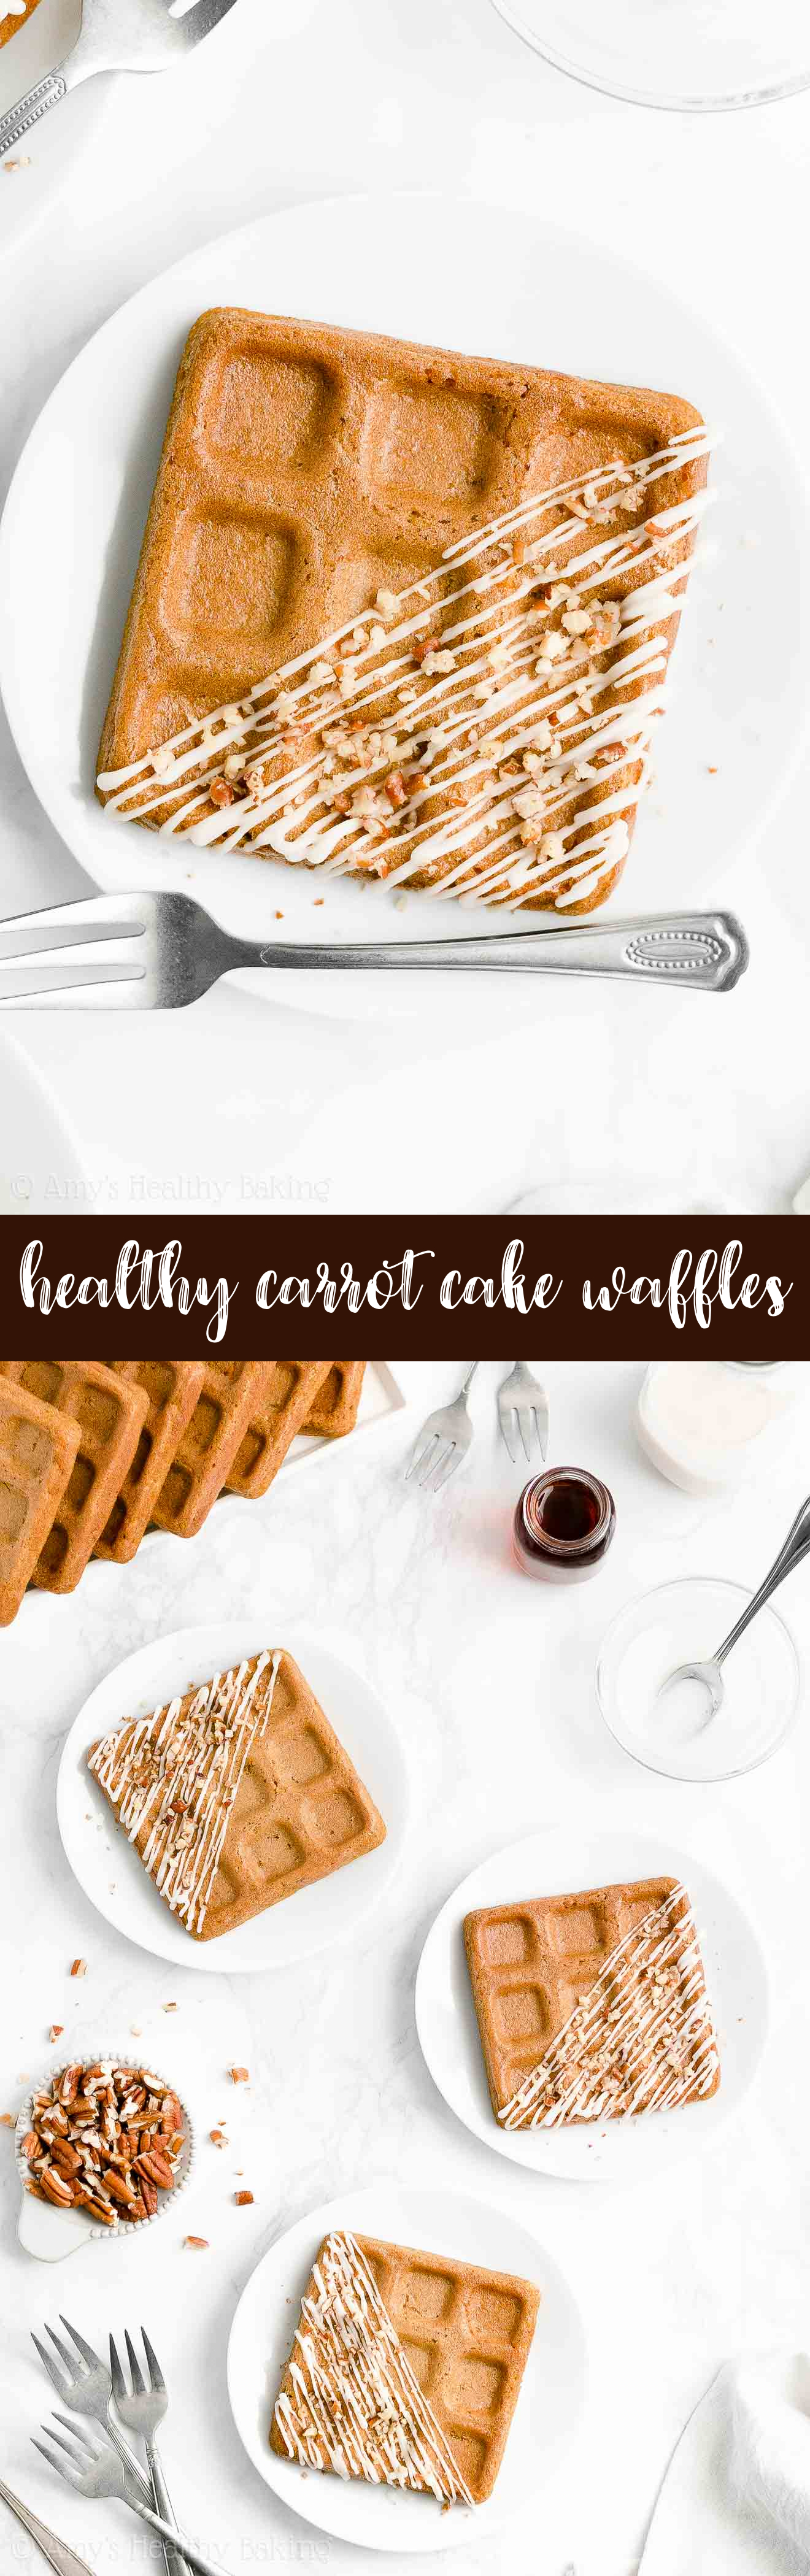 Best Ever Easy Healthy Clean Eating Low Calorie Crispy Fluffy Carrot Cake Waffles